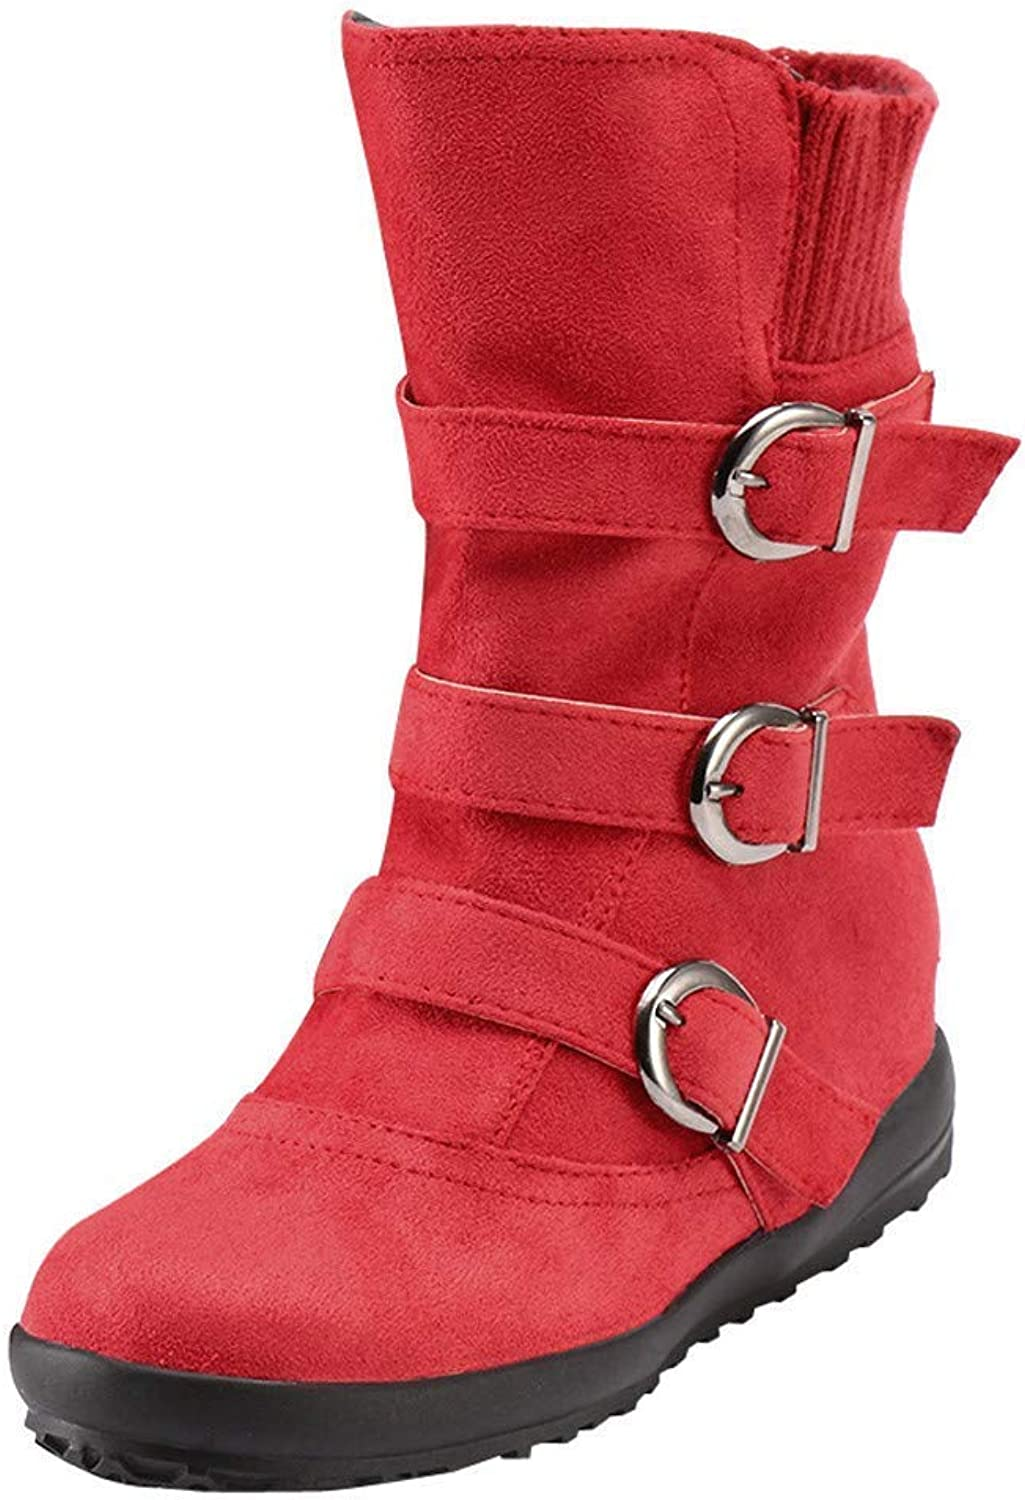 JaHGDU Women Suede Round Toe Zipper Flat Red Solid color Buckle Keep Warm Winter Snow Fashion Stylish Personality Wild Ladies Boots